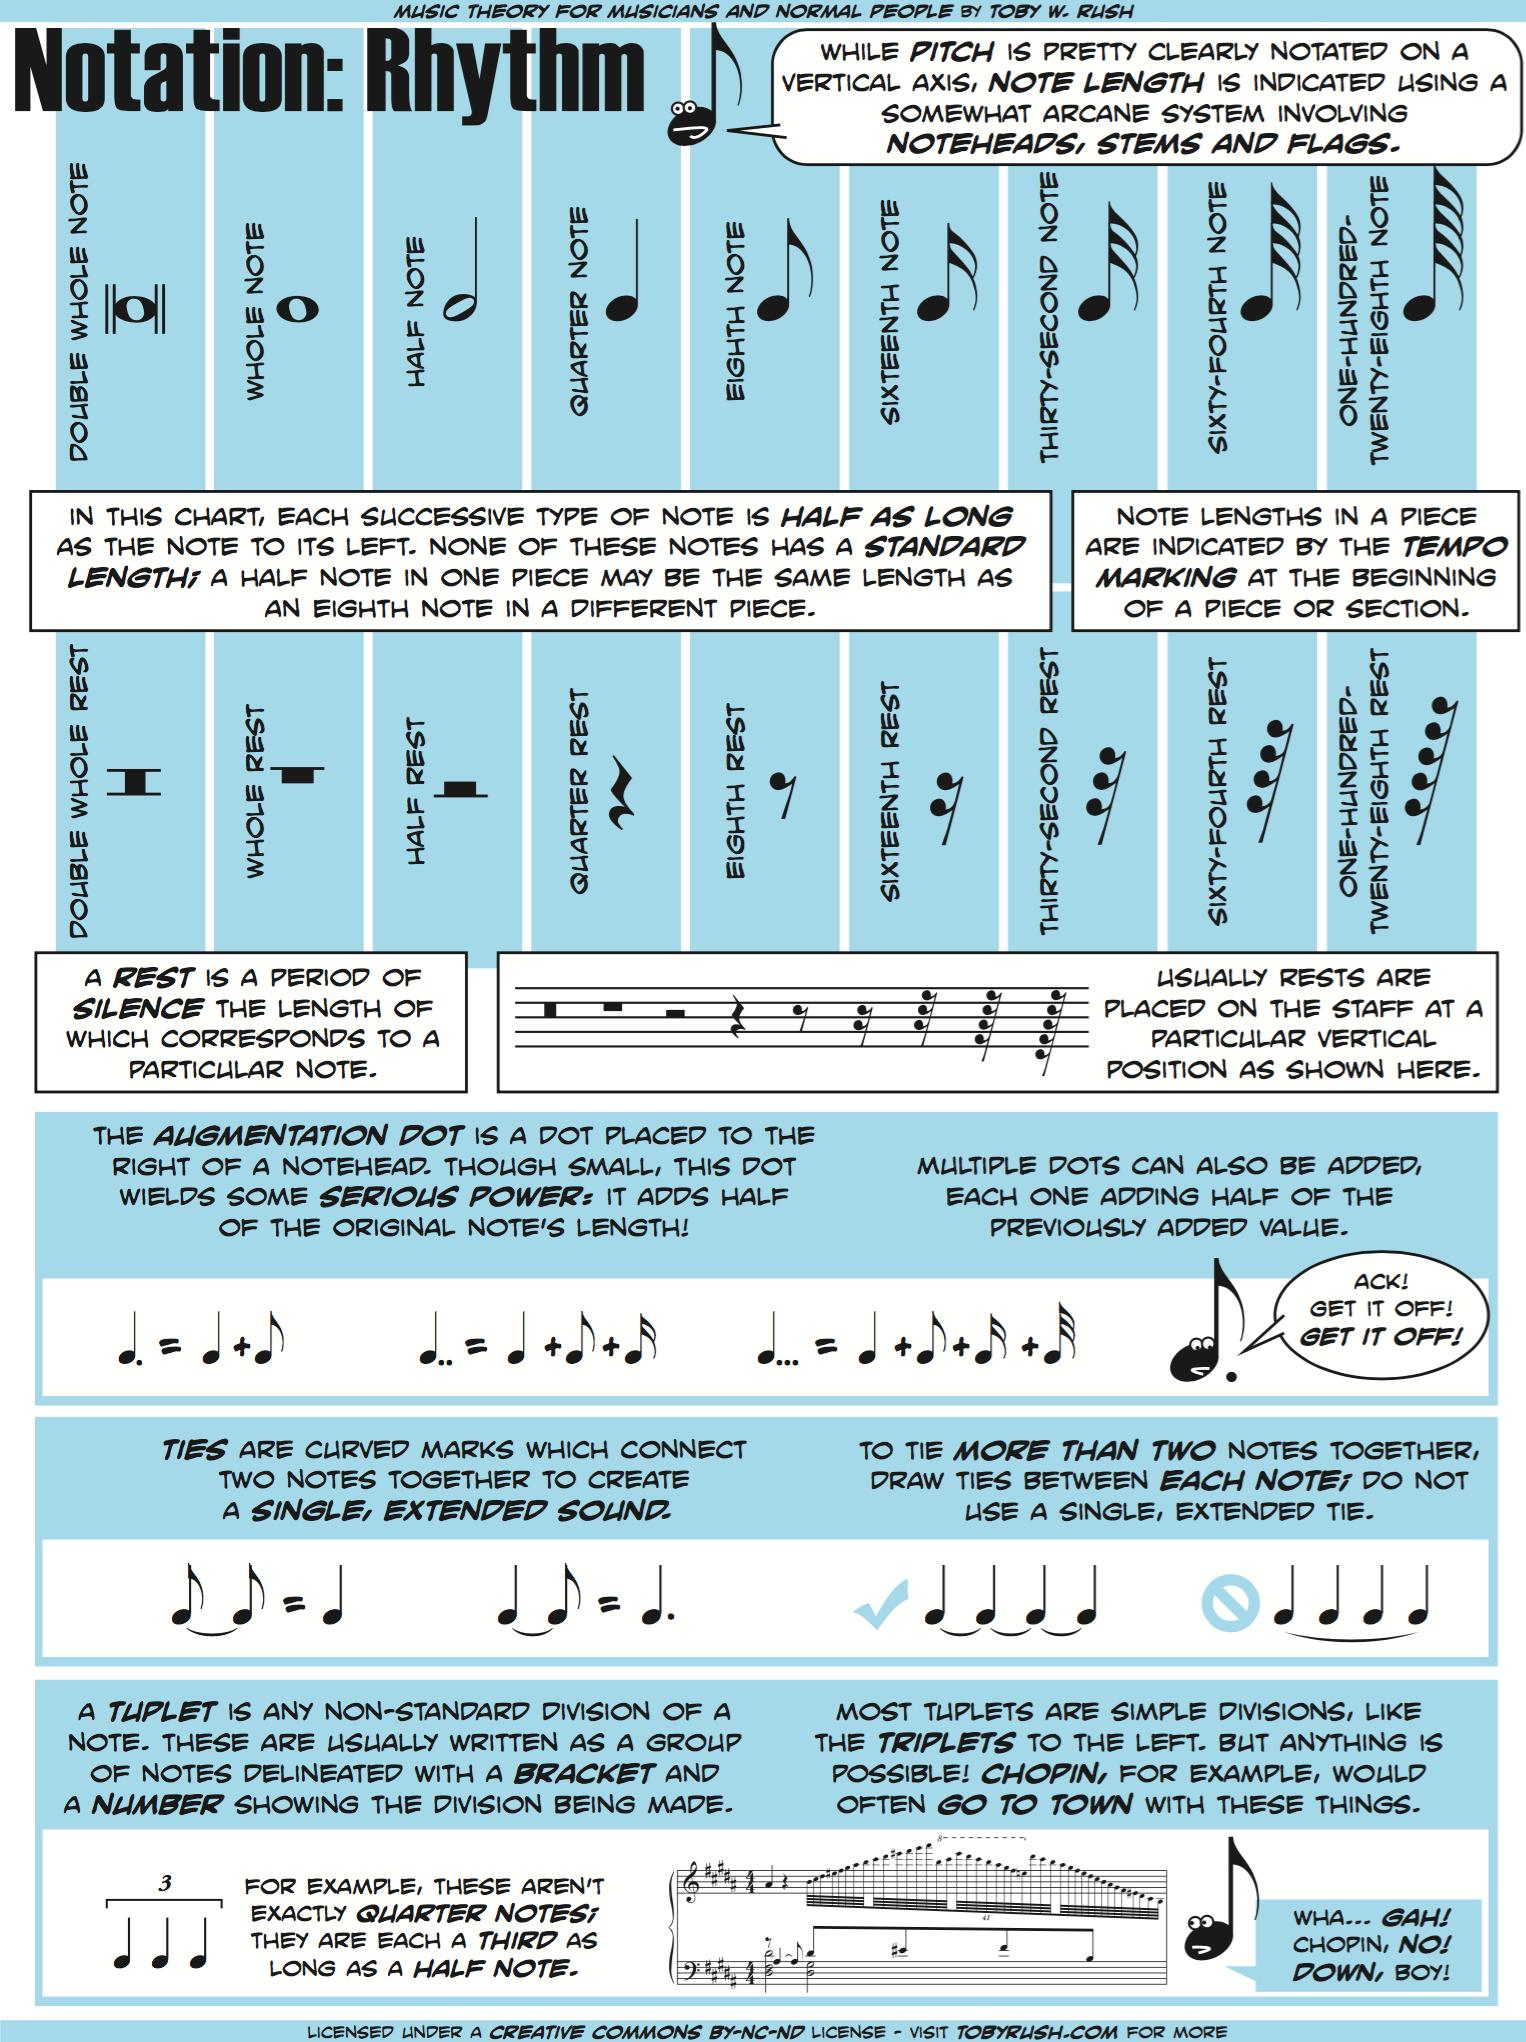 Music theory graphics by Toby W. Rush